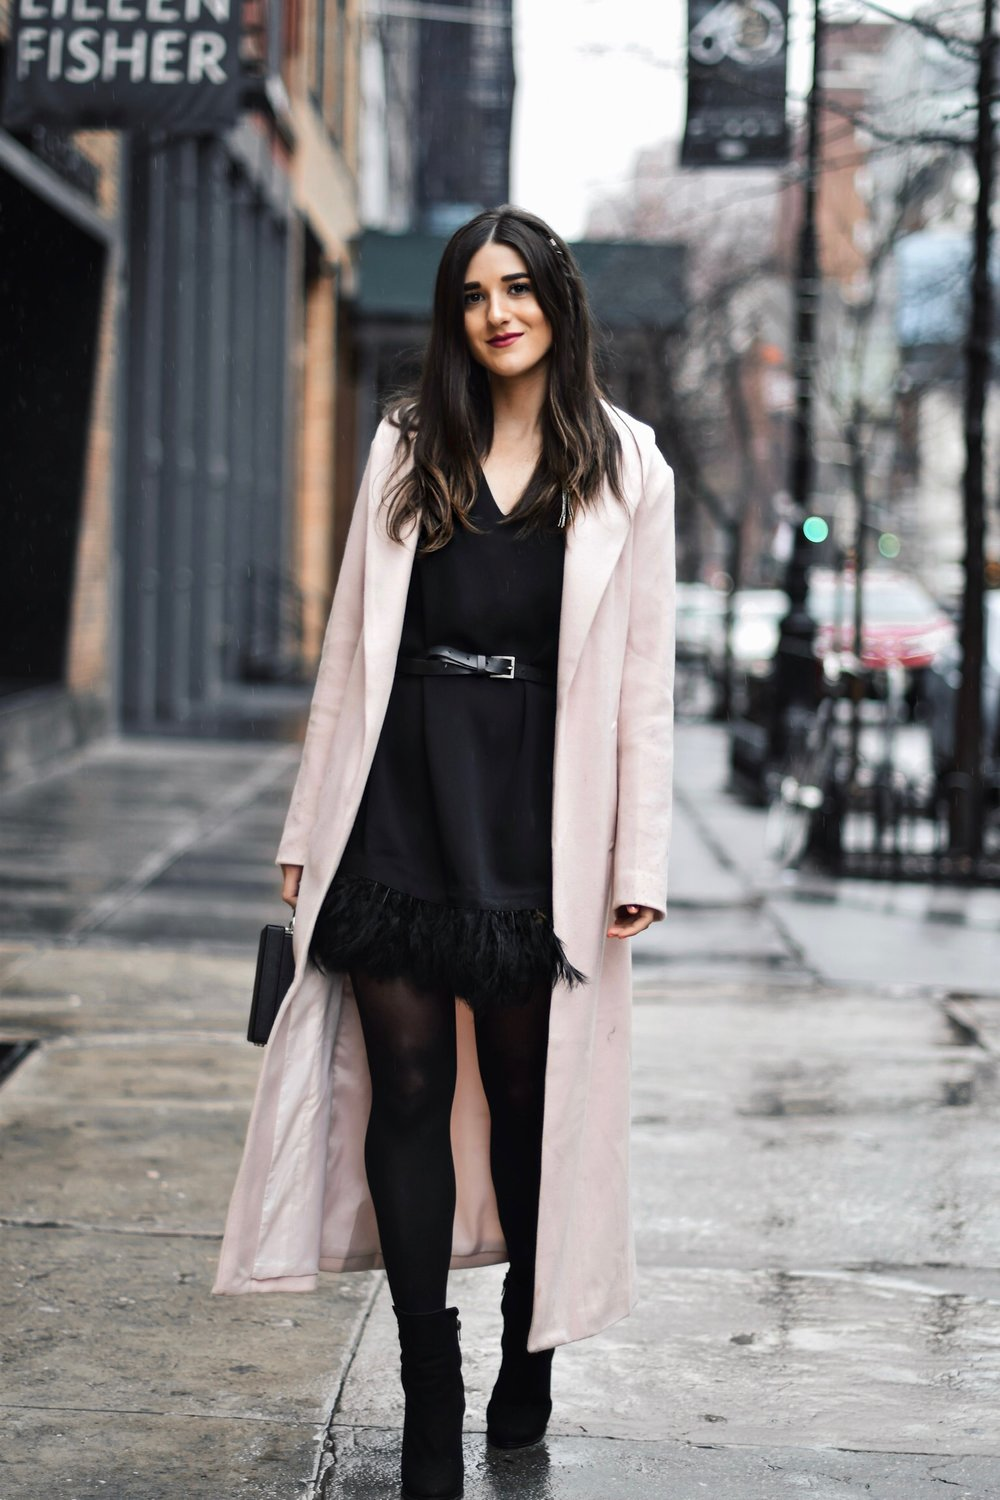 How To Stay Grounded Black Feather Trim Dress Long Pink Coat Esther Santer Fashion Blog NYC Street Style Blogger Outfit OOTD Trendy Saks Off 5th Feather Trim Dress Black Tights Booties M4D3 Shoes ASOS Belt Blush Box Clutch Bag Shop Wear Cozy Winter.jpg